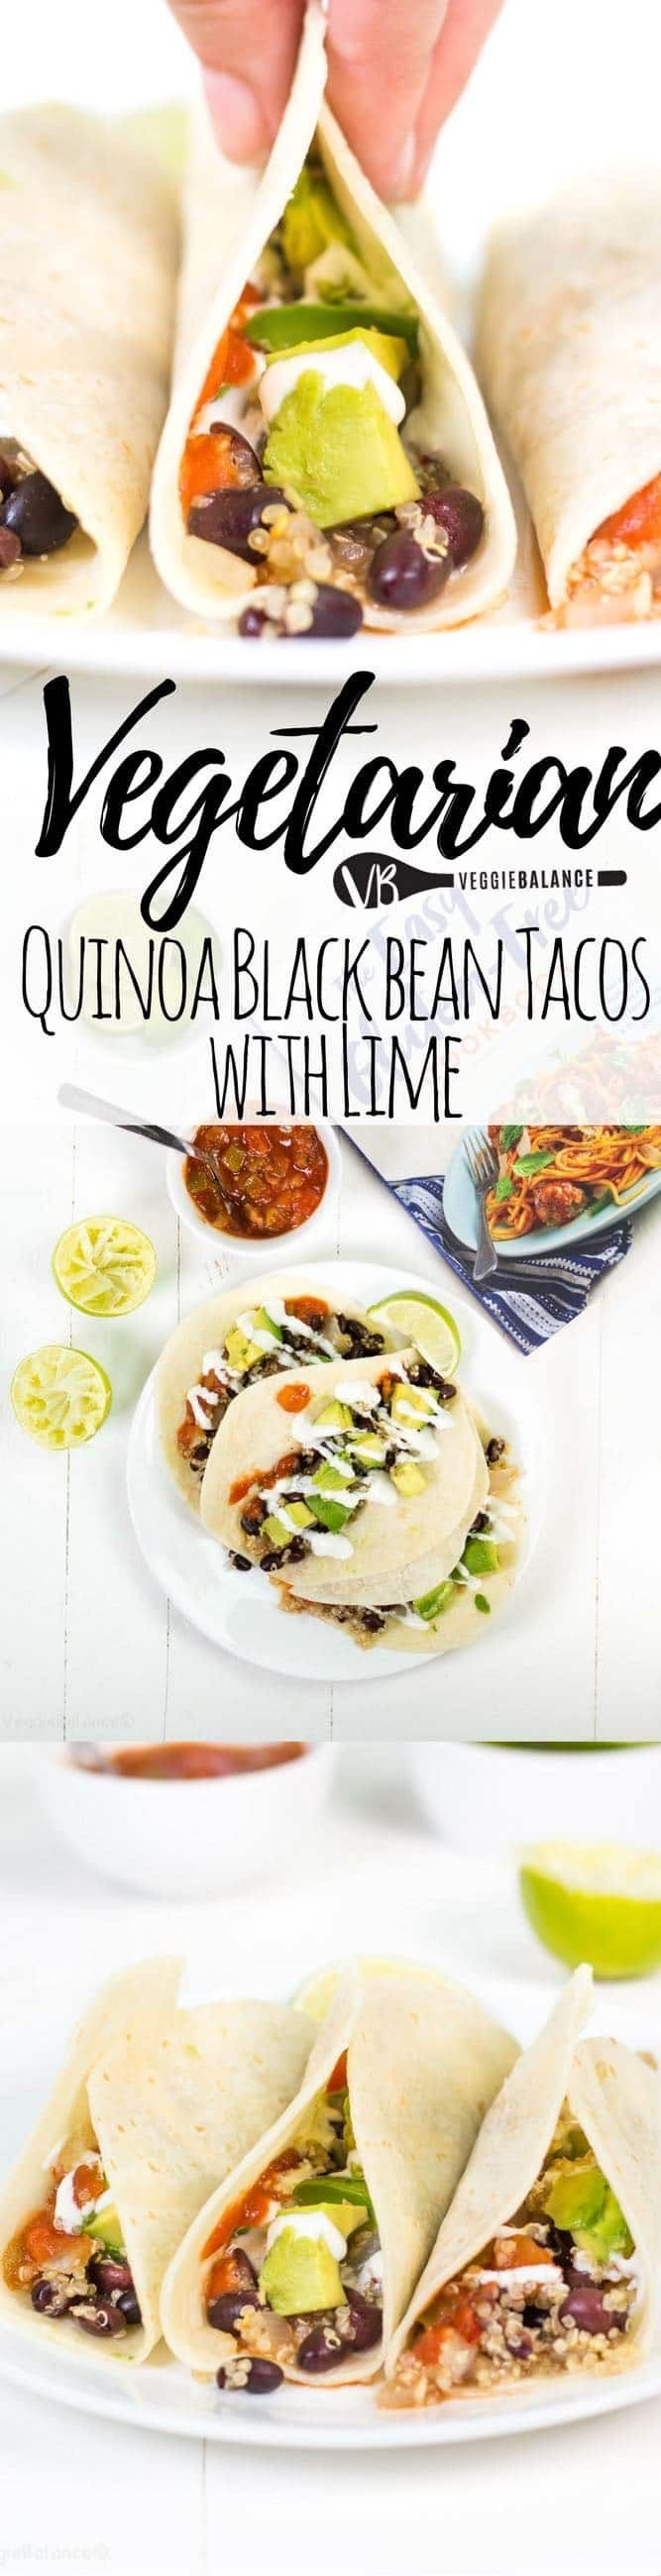 quinoa black bean tacos with lime recipe for those quick and healthy weeknight dinner meals. in under 30 minutes you'll be spooning this vegetarian taco filling into a warm corn tortilla. win. (gluten-free, dairy-free, vegan, nut-free)